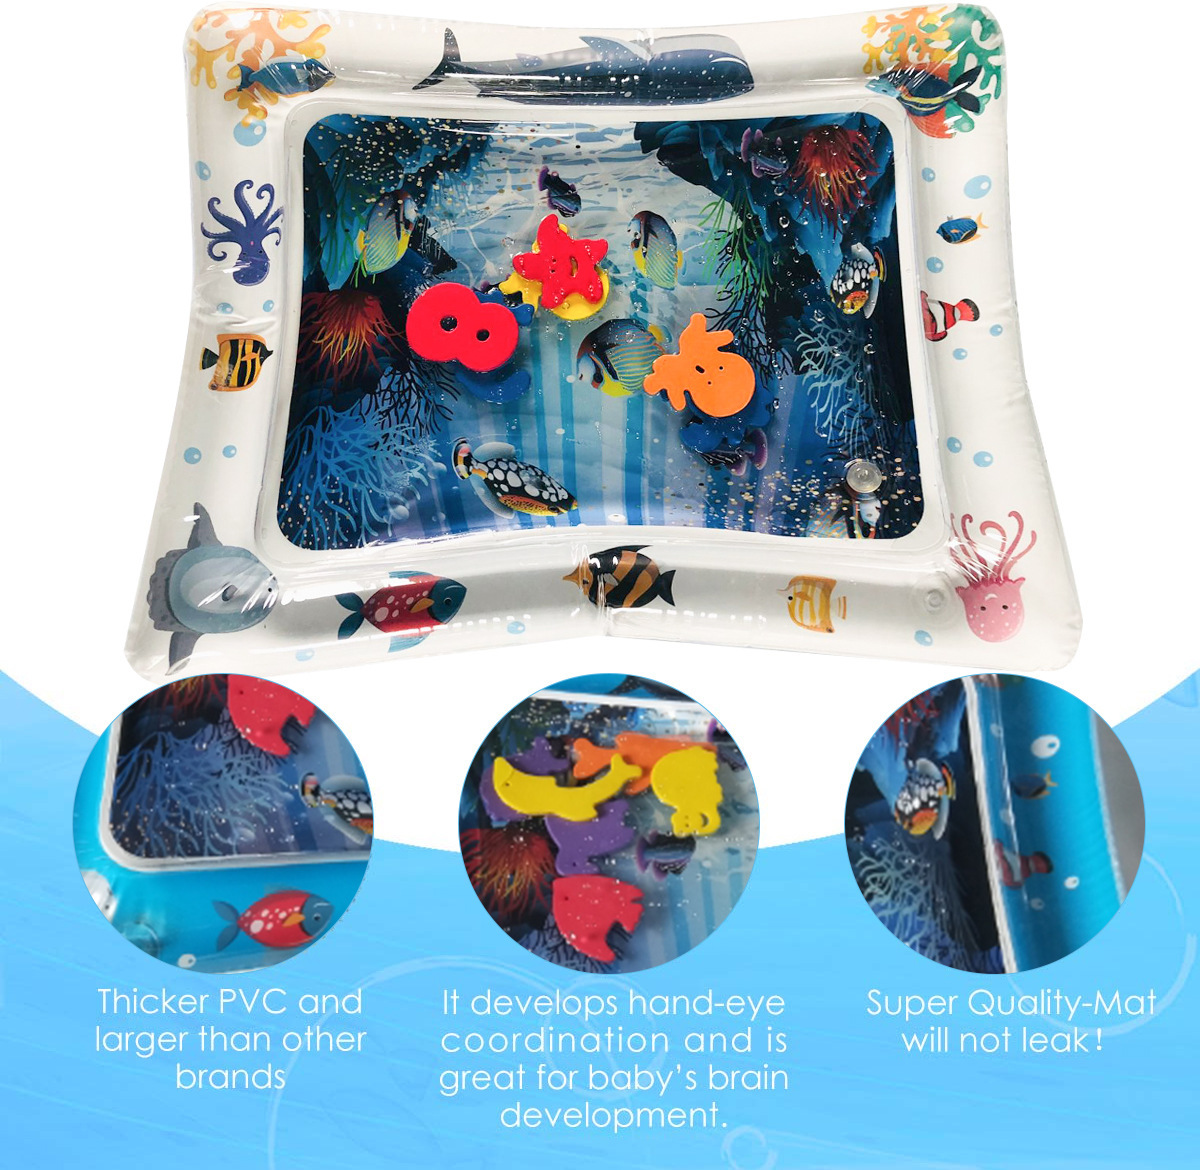 HTB1zuXlMNjaK1RjSZFAq6zdLFXas 2019 Creative Water Mat Baby Inflatable Patted Pad Baby Inflatable Water Cushion Infant Play Mat Toddler Funny Pat Pad Toys